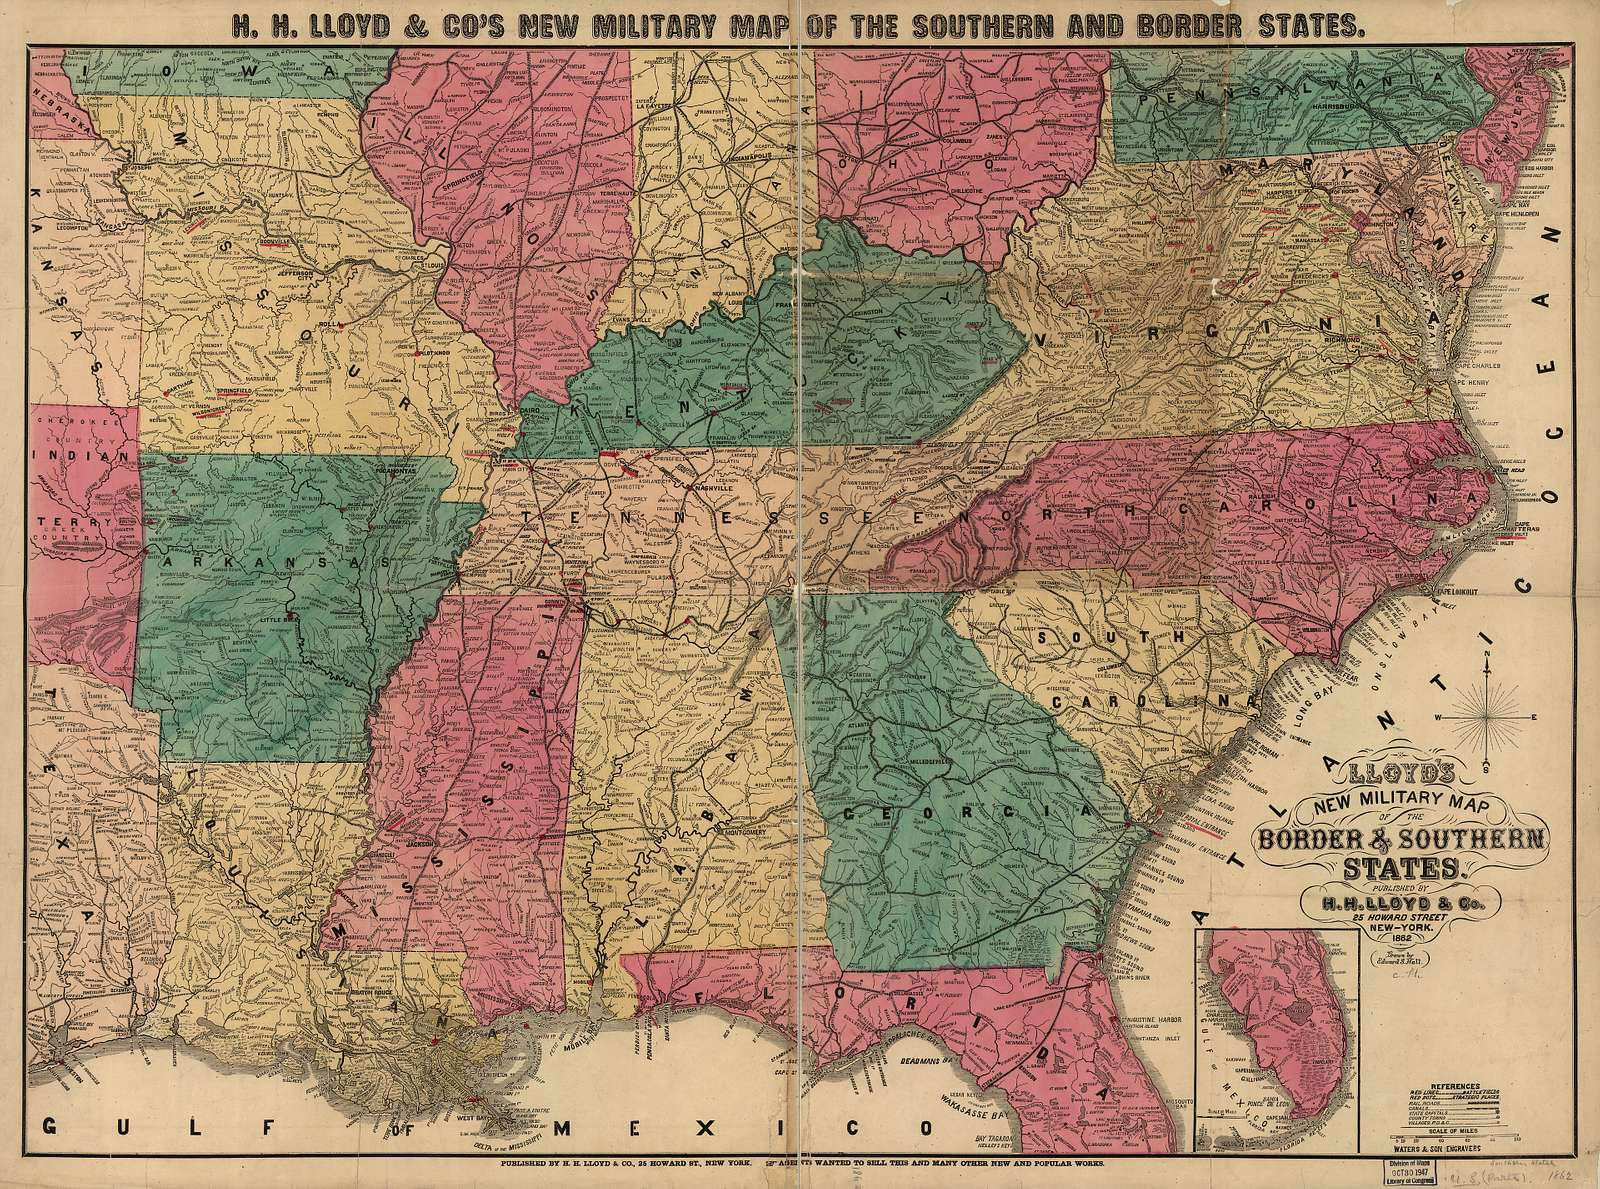 Lloyd's new military map of the border & southern states